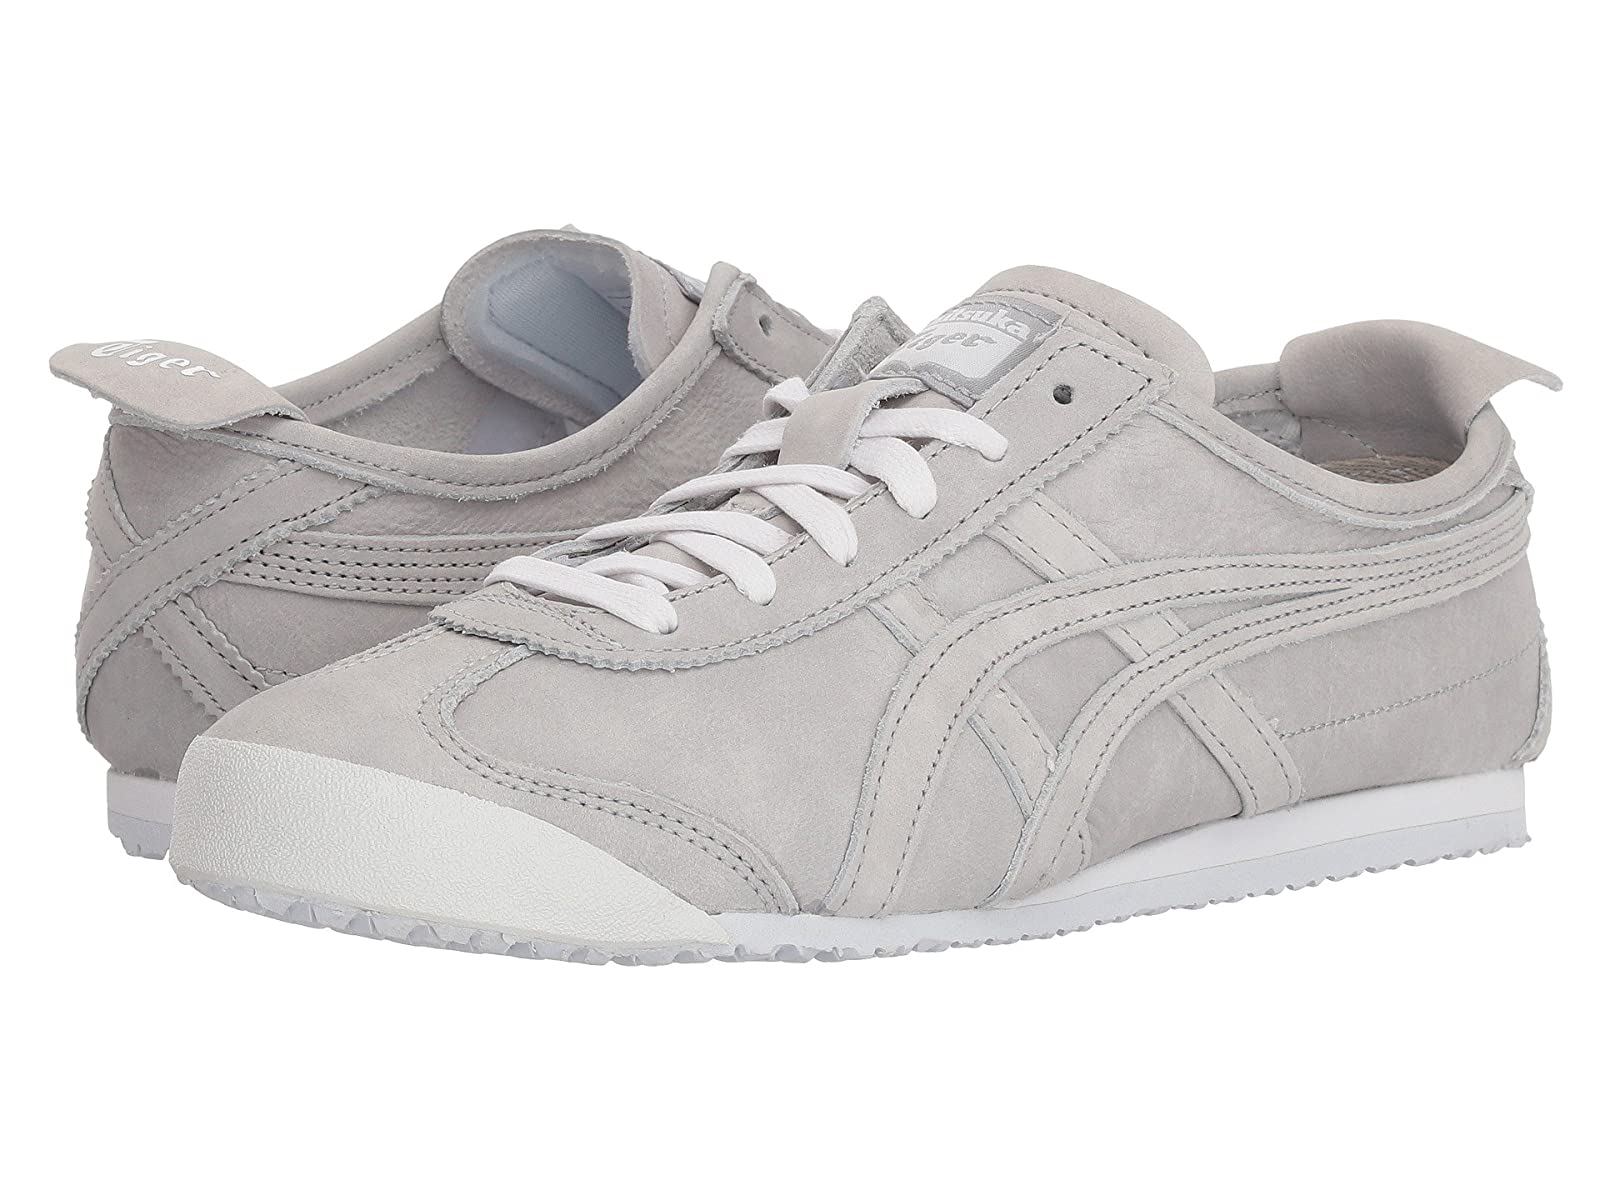 Onitsuka Tiger by Asics Mexico 66®Atmospheric grades have affordable shoes